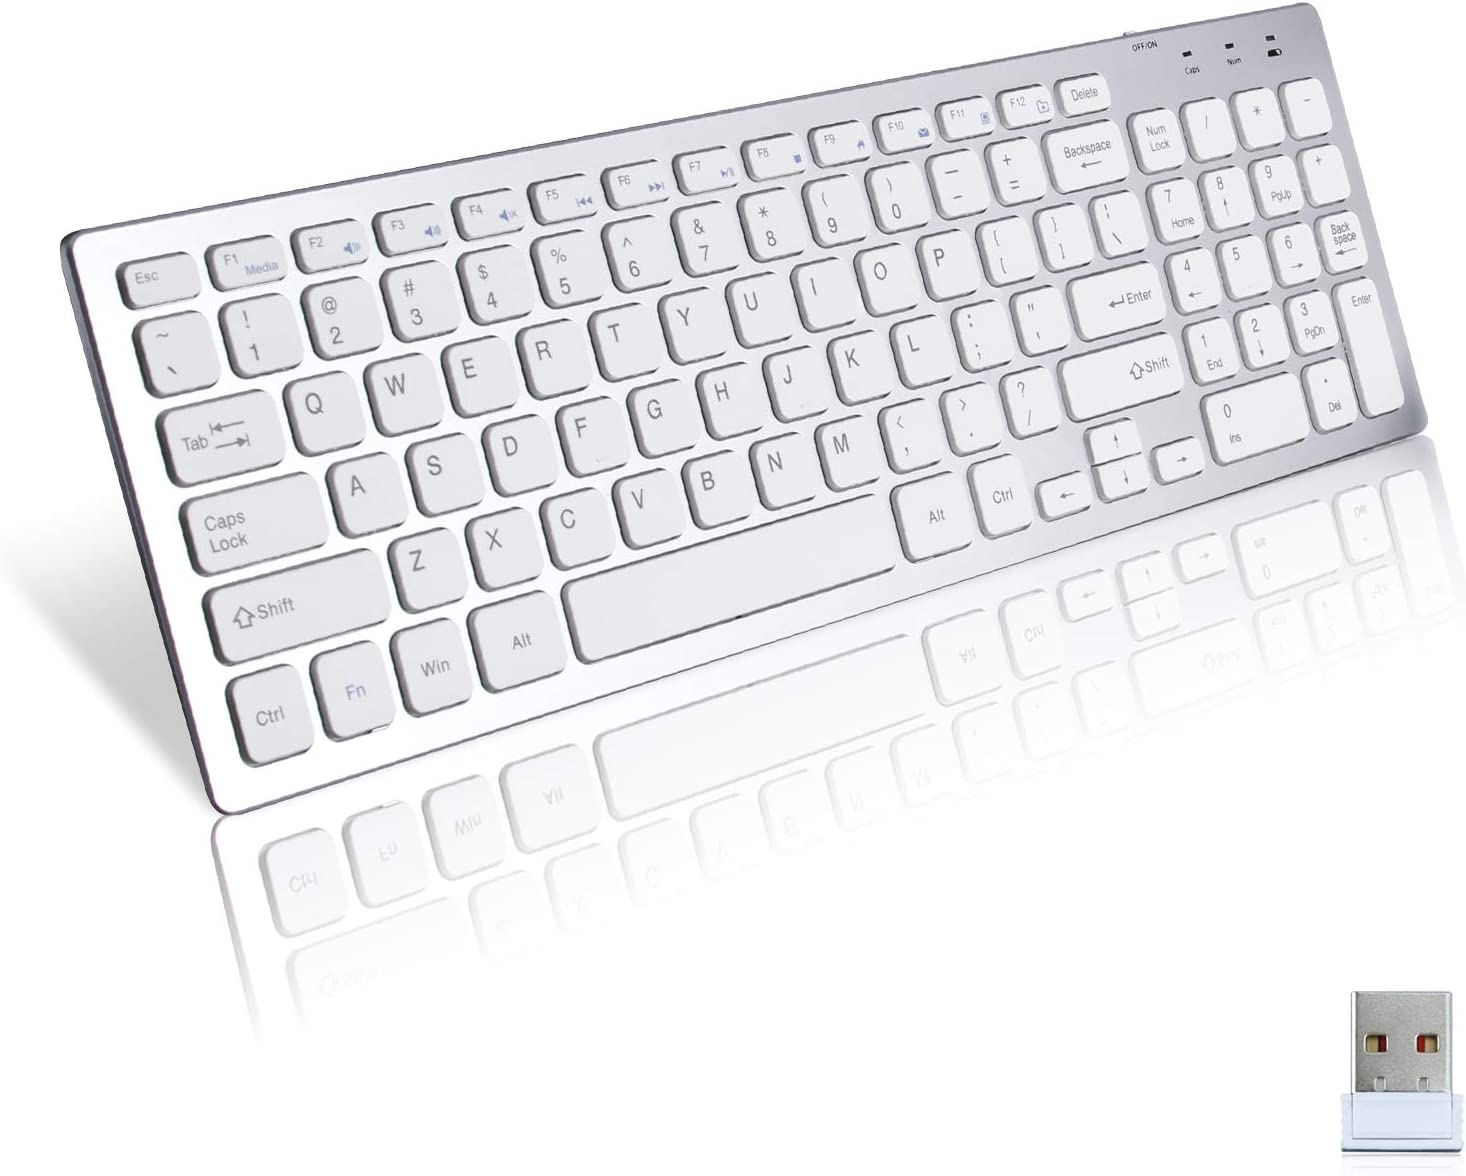 AODOOR Wireless Keyboard Slim USB 2.4GHZ Full Size Silent Wireless Keyboards Ergonomic Design with Numeric Keypad for Computer Laptop Desktop PC Surface Smart TV and Mac Windows XP/10/8/7,Silver